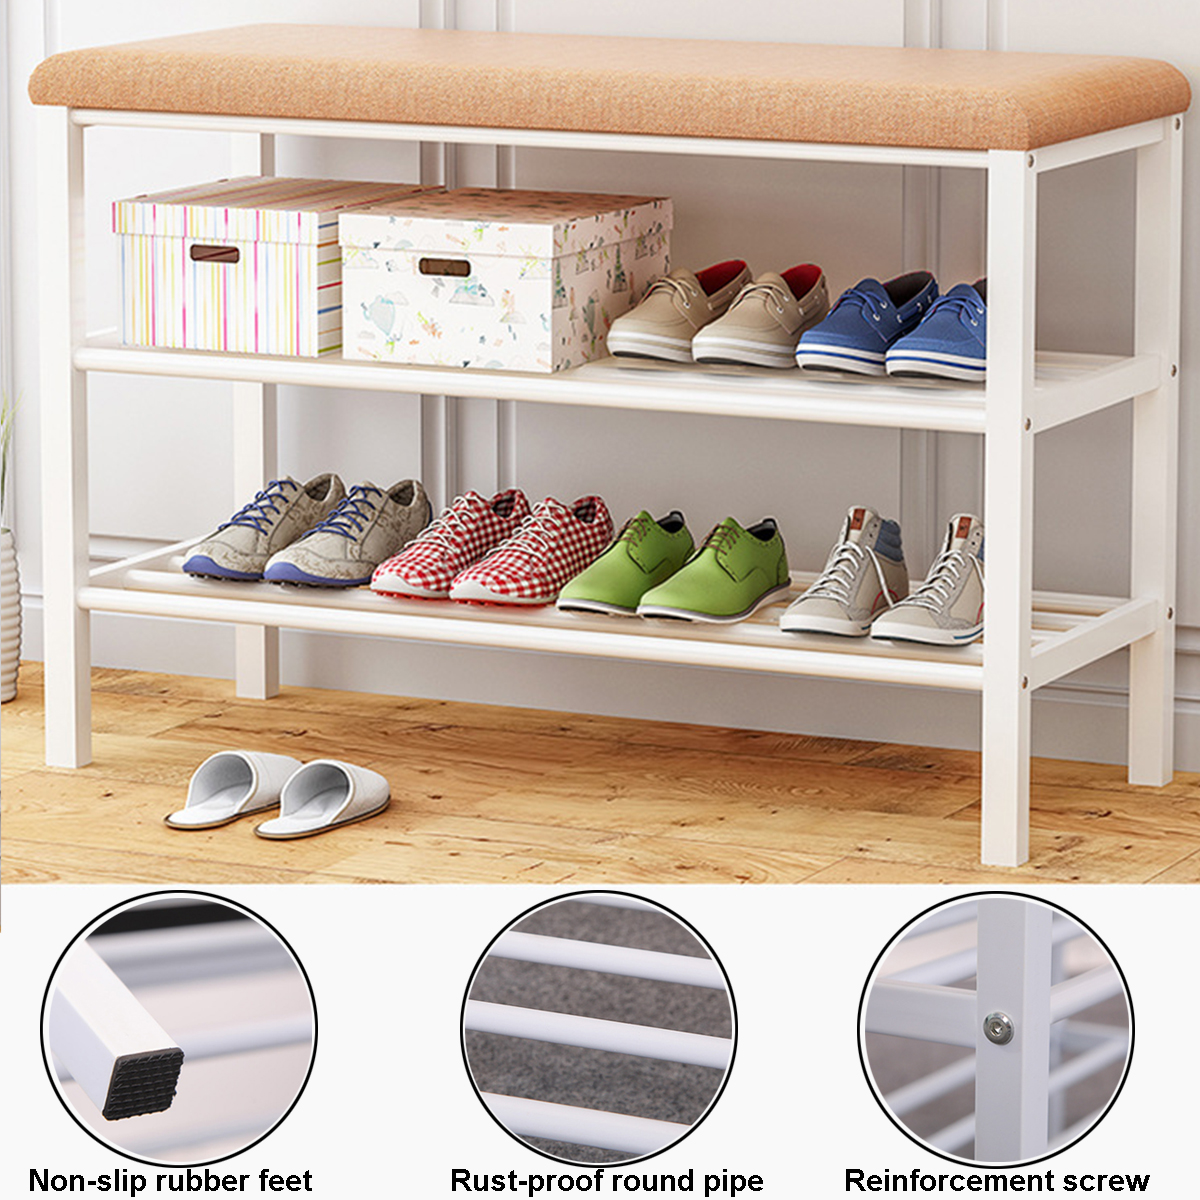 32in Multifunctional Space Saving Organization Storage Bench Shoe Rack Bench for Entryway Living Room w//Padded Seat Bedroom 2 Drawers- Black Walnut